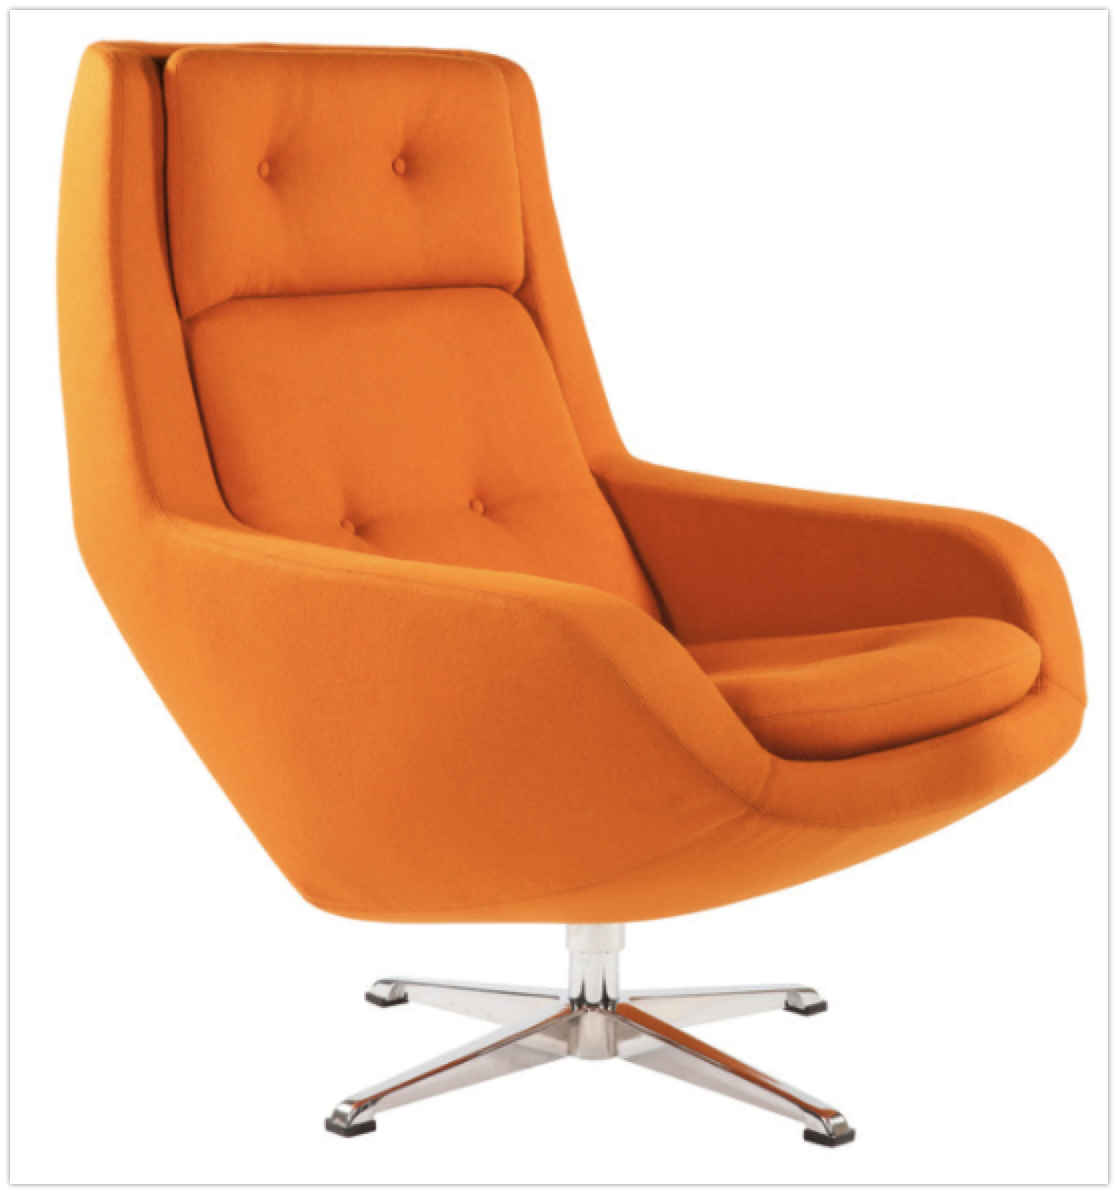 Amazing Top 7 Orange Lounge Swivel Chairs In 2019 Lamtechconsult Wood Chair Design Ideas Lamtechconsultcom